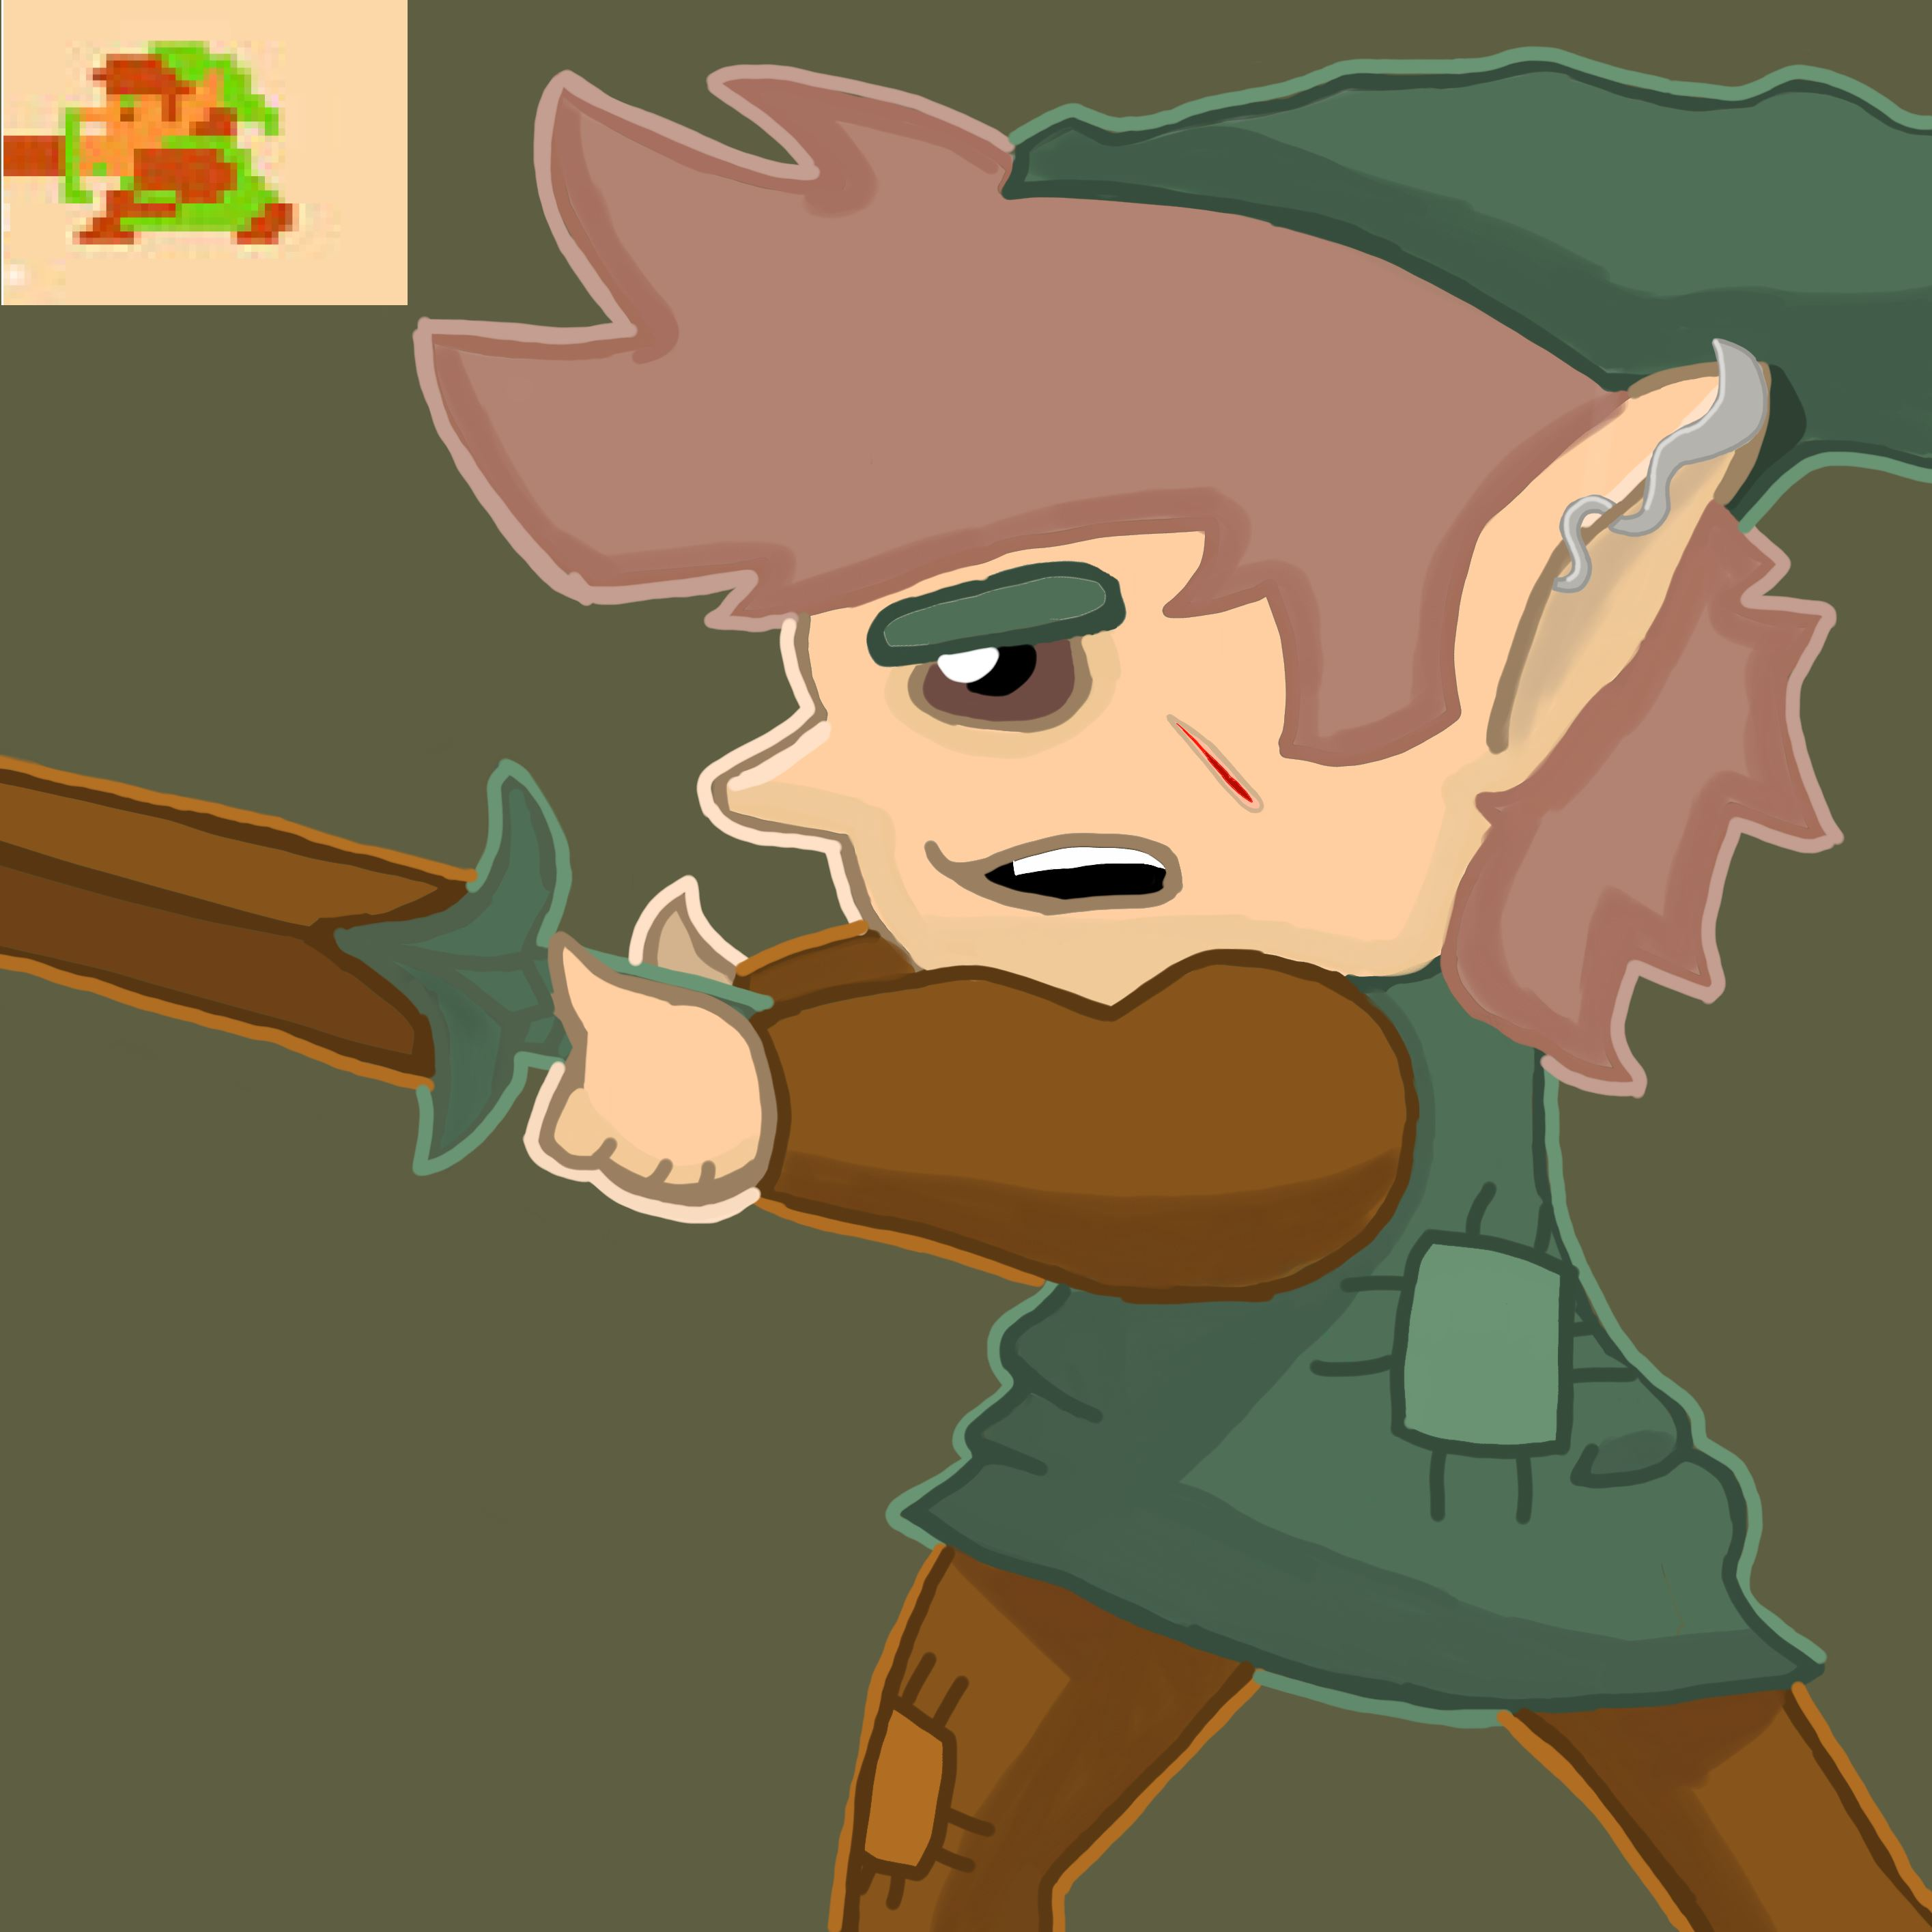 Link in action!